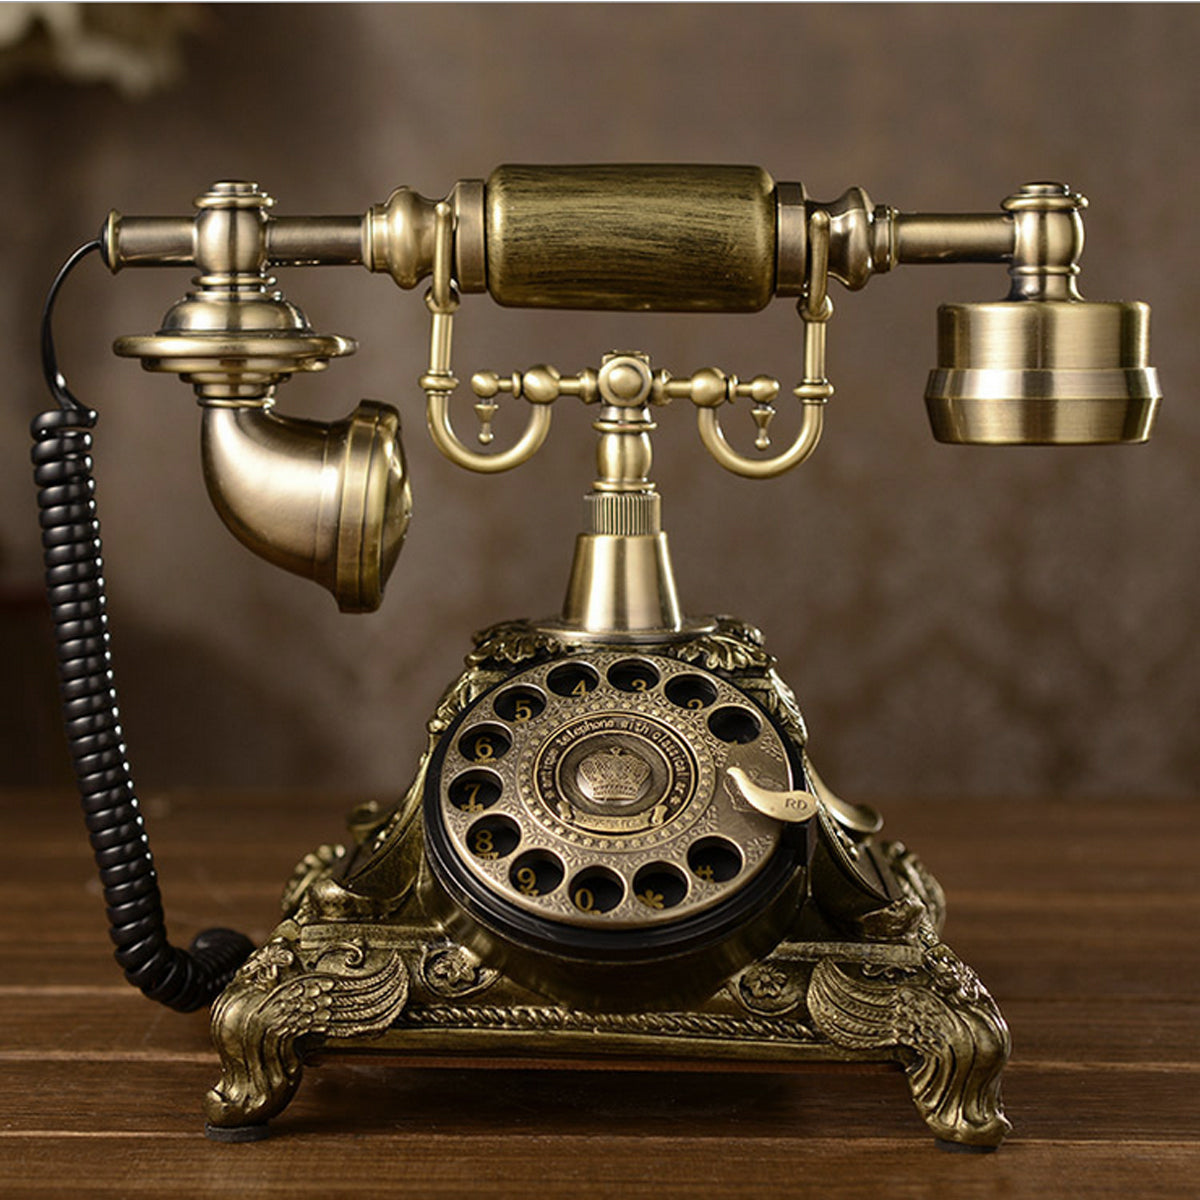 Retro Vintage Push Button Ceramic Antique Telephone Dial Desk Phone Home Decor